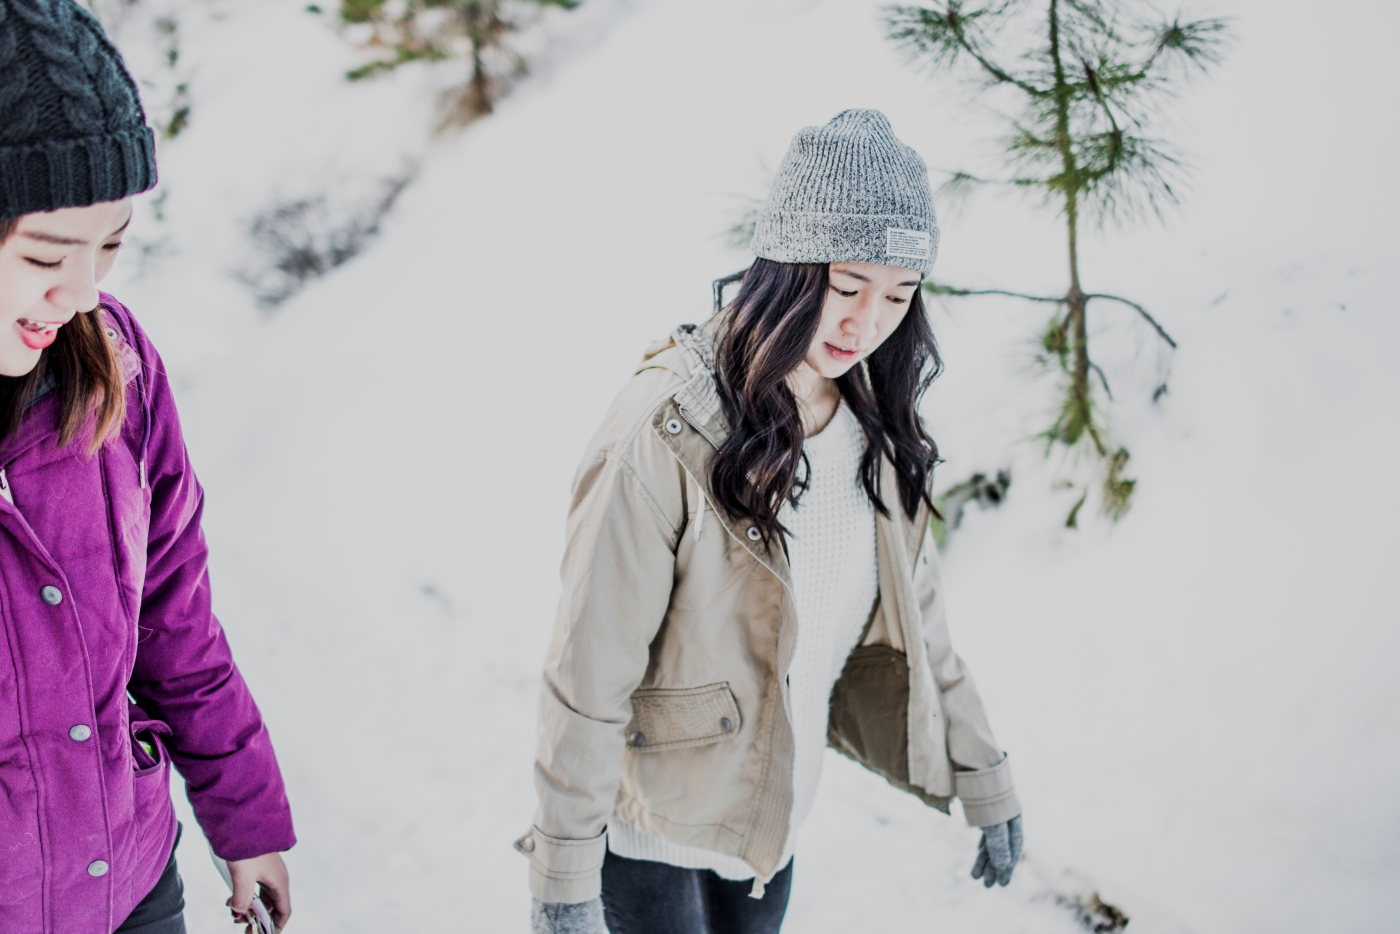 leavenworth_elopement_by_jane_speleers_photography_seattle_photographer_2017_winter_snow_joy_and_jason_rendezvous_ranch_cashmere_leavenworth_nahahum_canyon_all_rights_reserveddsc_9915